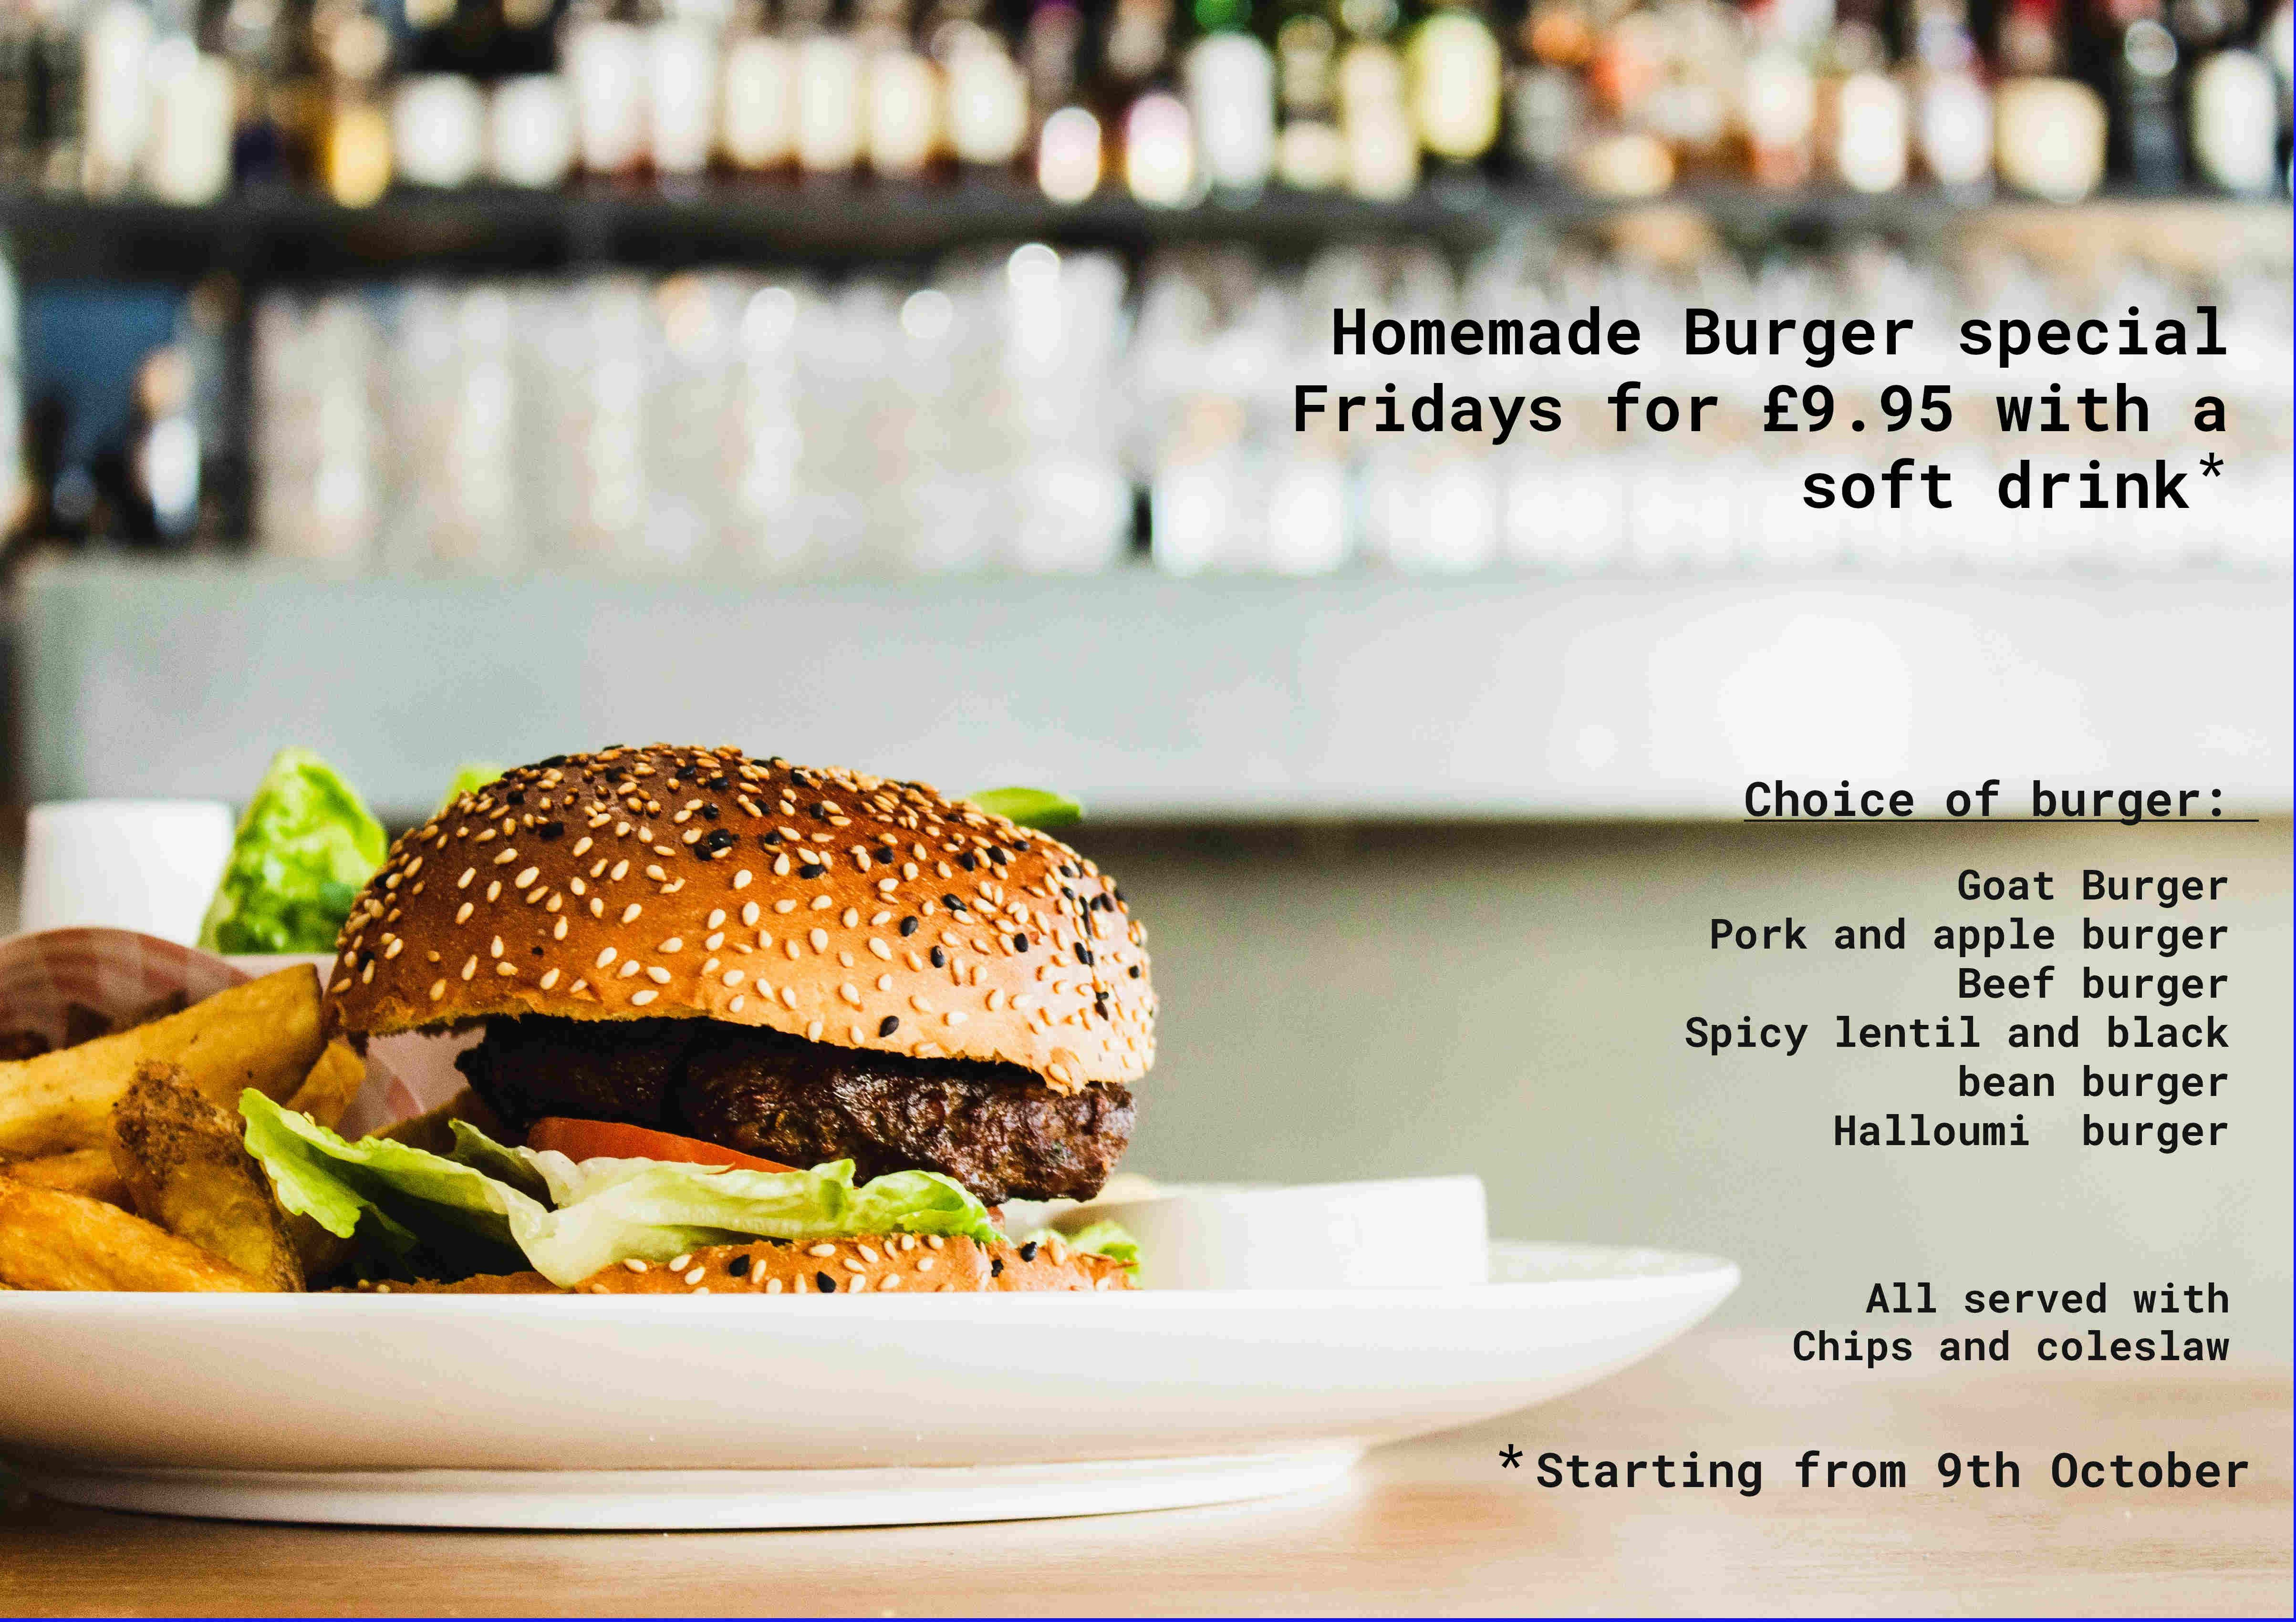 Homemade Burger special  Fridays for £9.95 with a soft drink